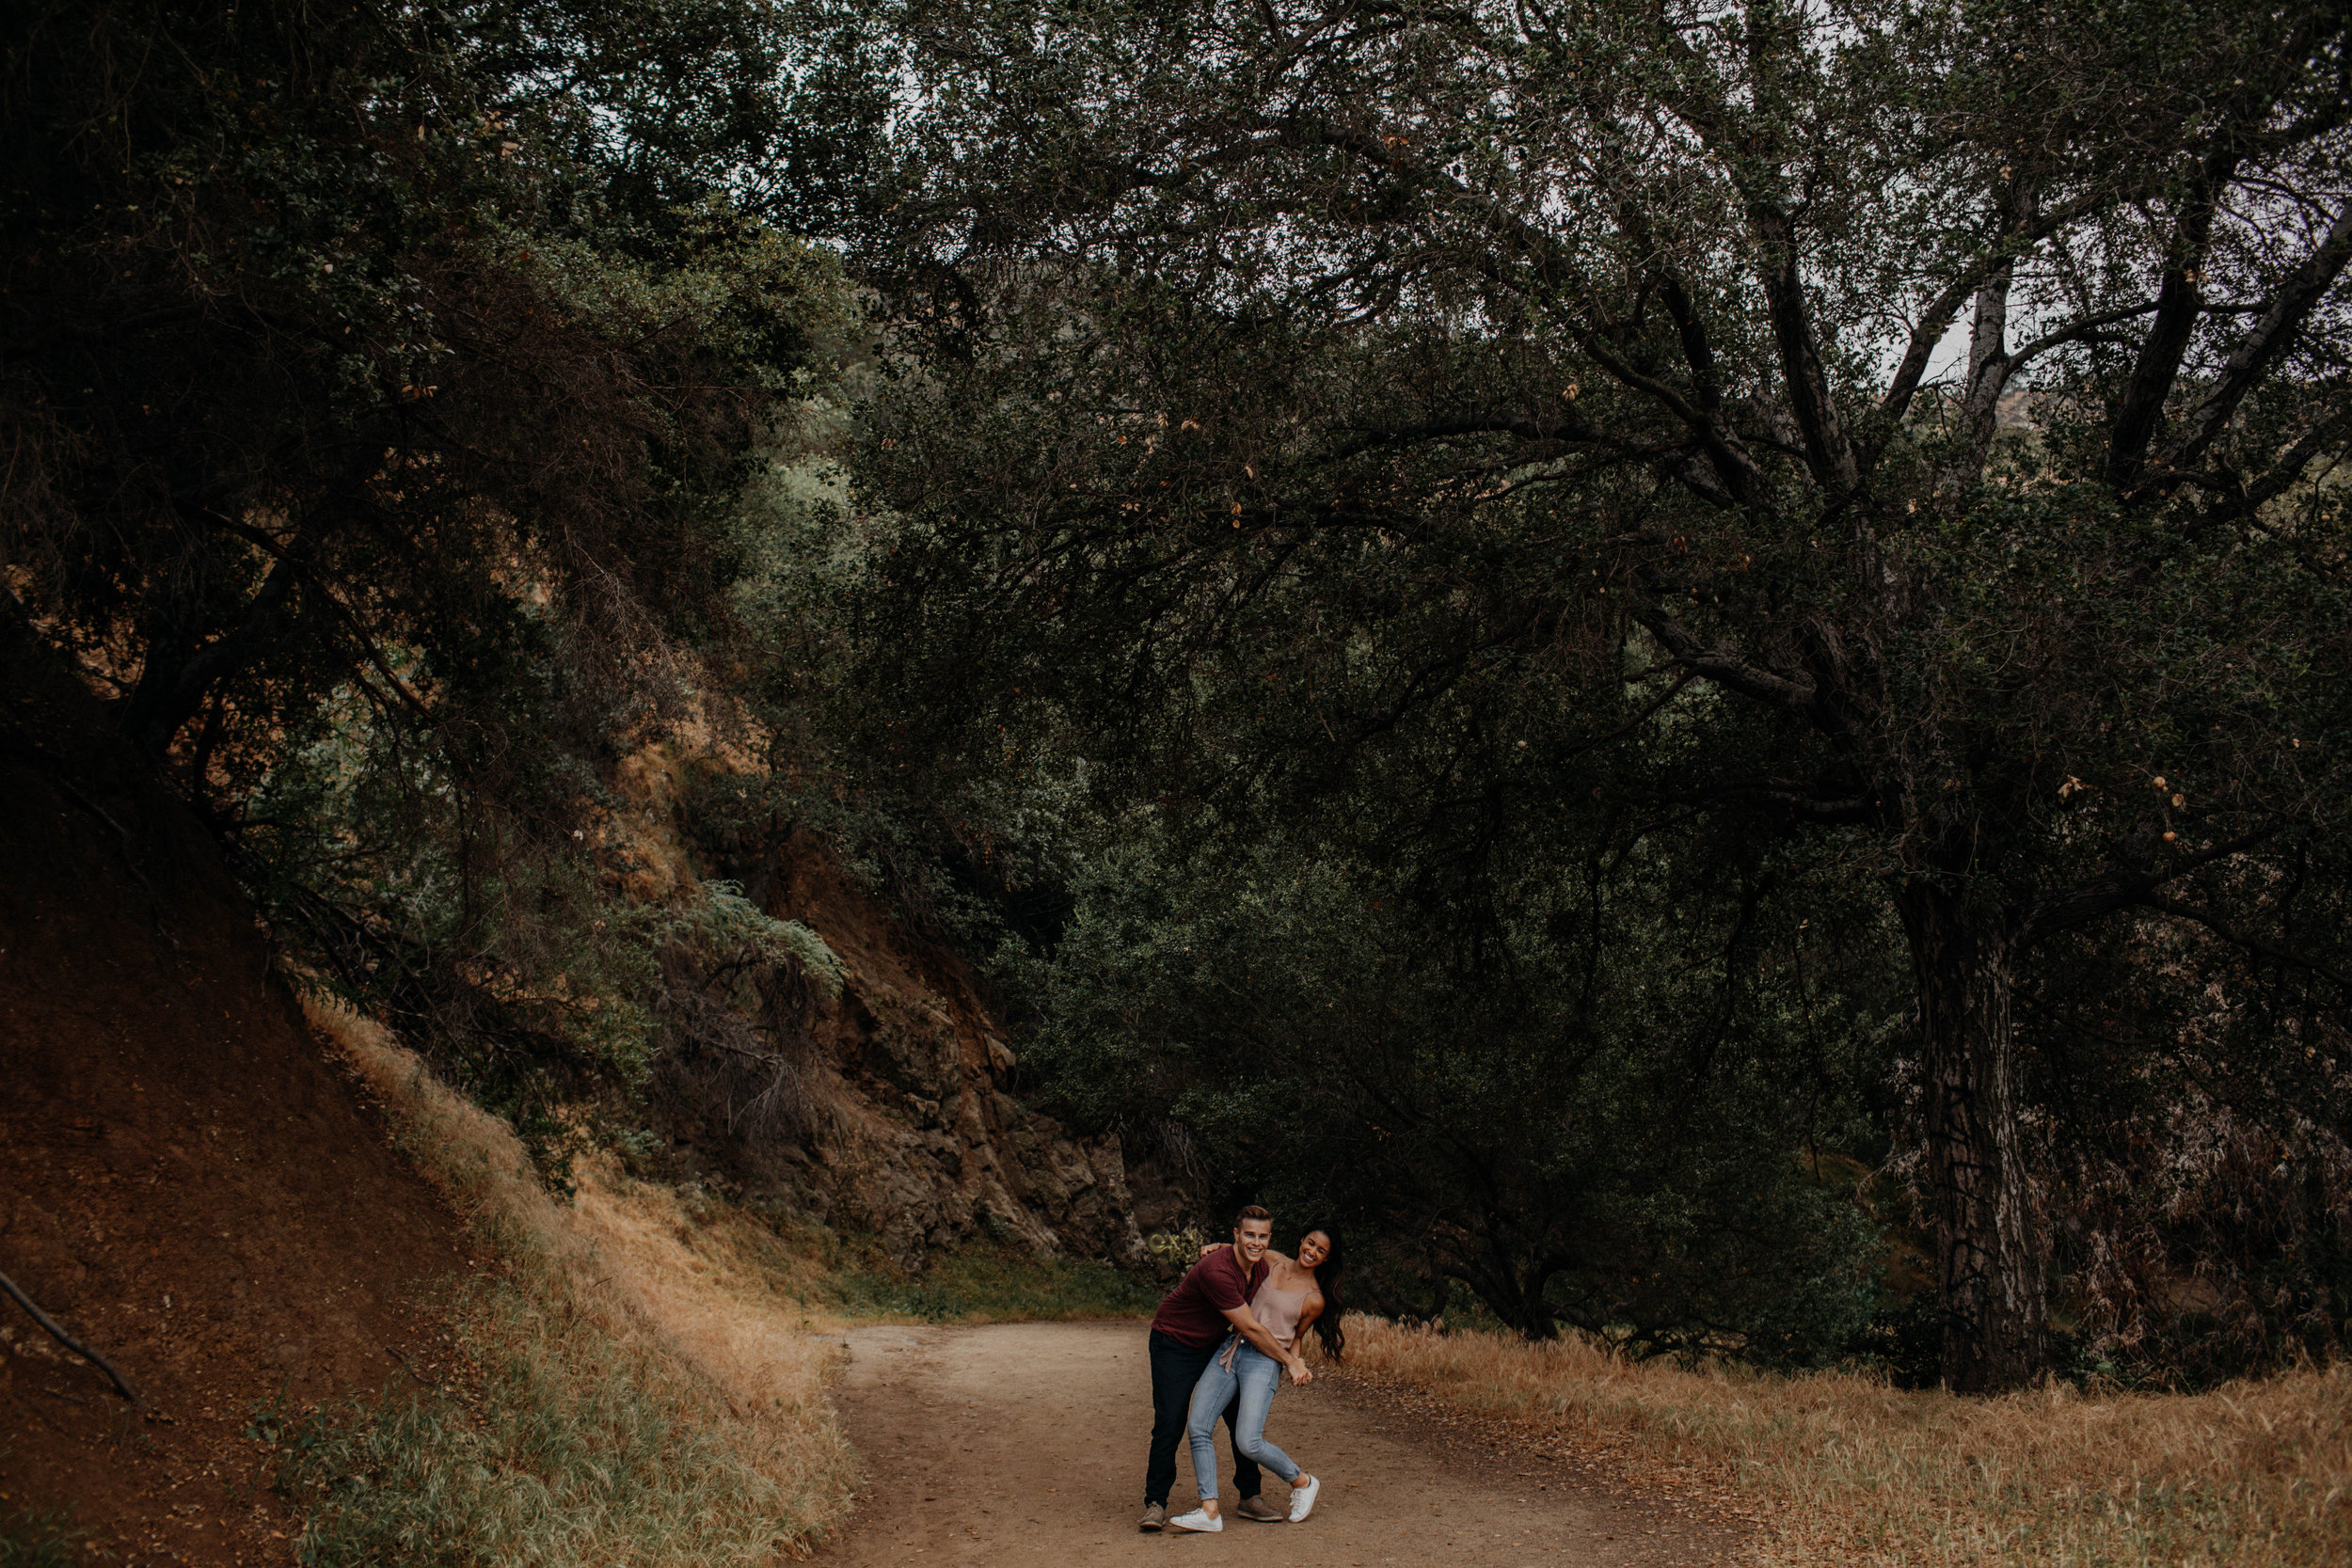 los angeles couples photography session arts district griffith park photo session grace e jones photography70.jpg